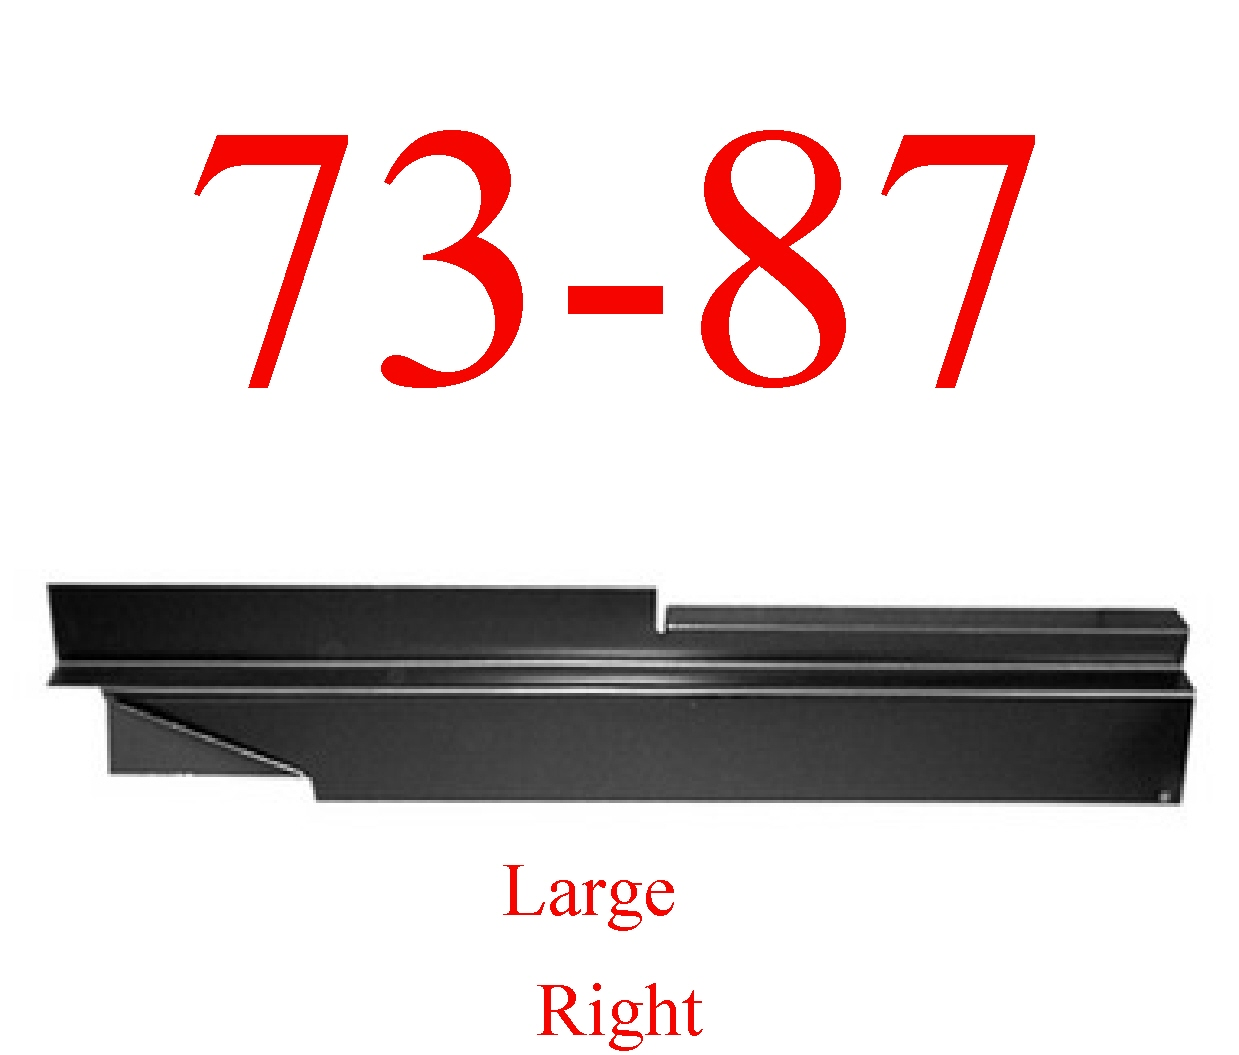 73-87 Chevy Right Large Inner Rocker Panel